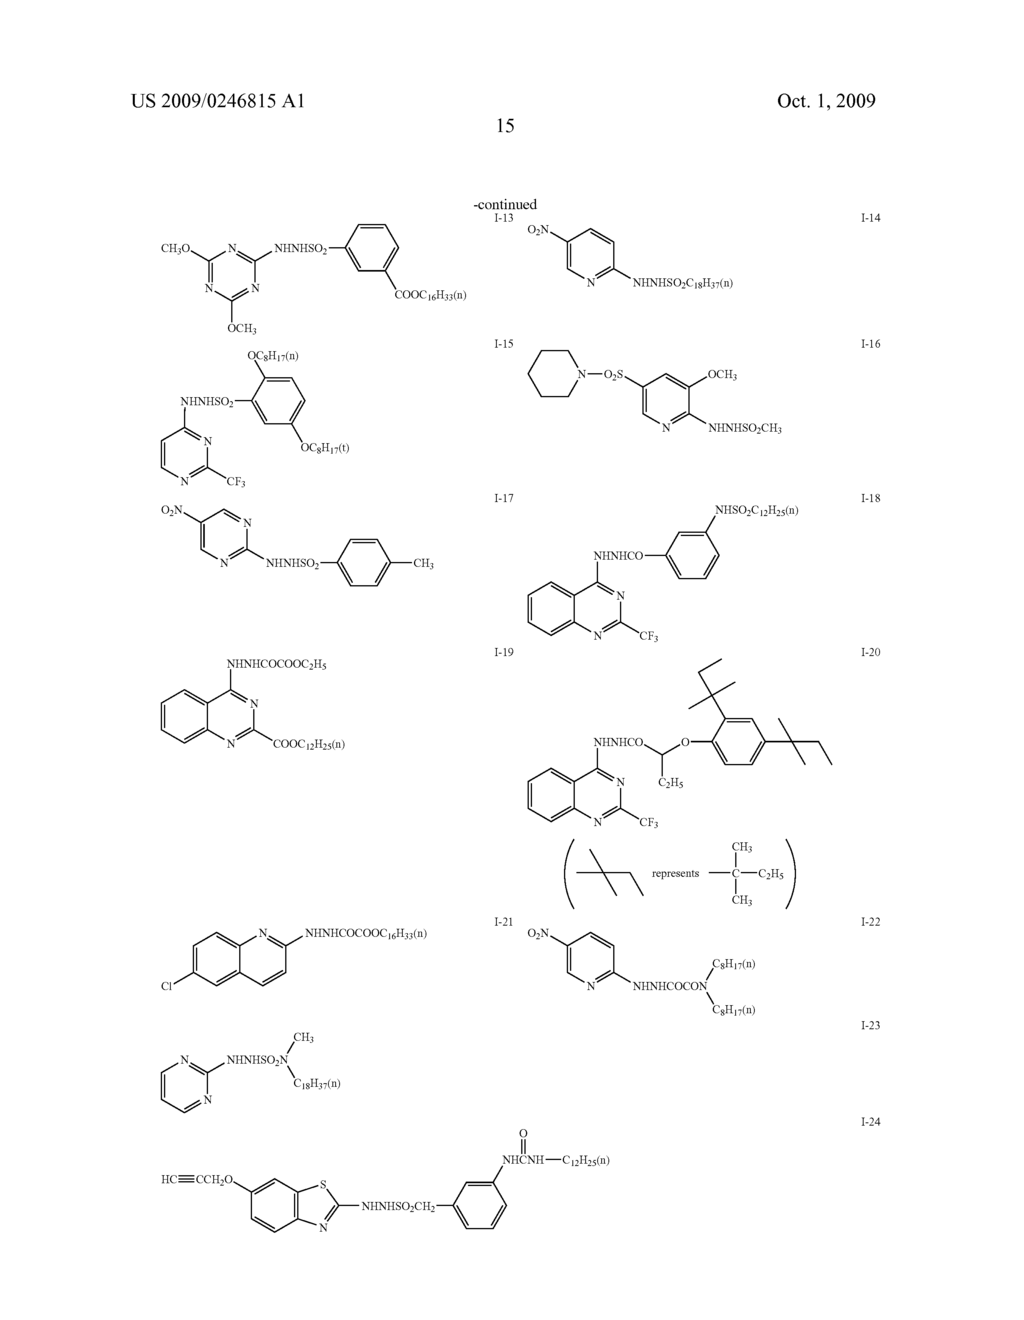 PROTEASE DETECTION MATERIAL, SET OF PROTEASE DETECTION MATERIALS, AND METHOD FOR MEASURING PROTEASE - diagram, schematic, and image 16